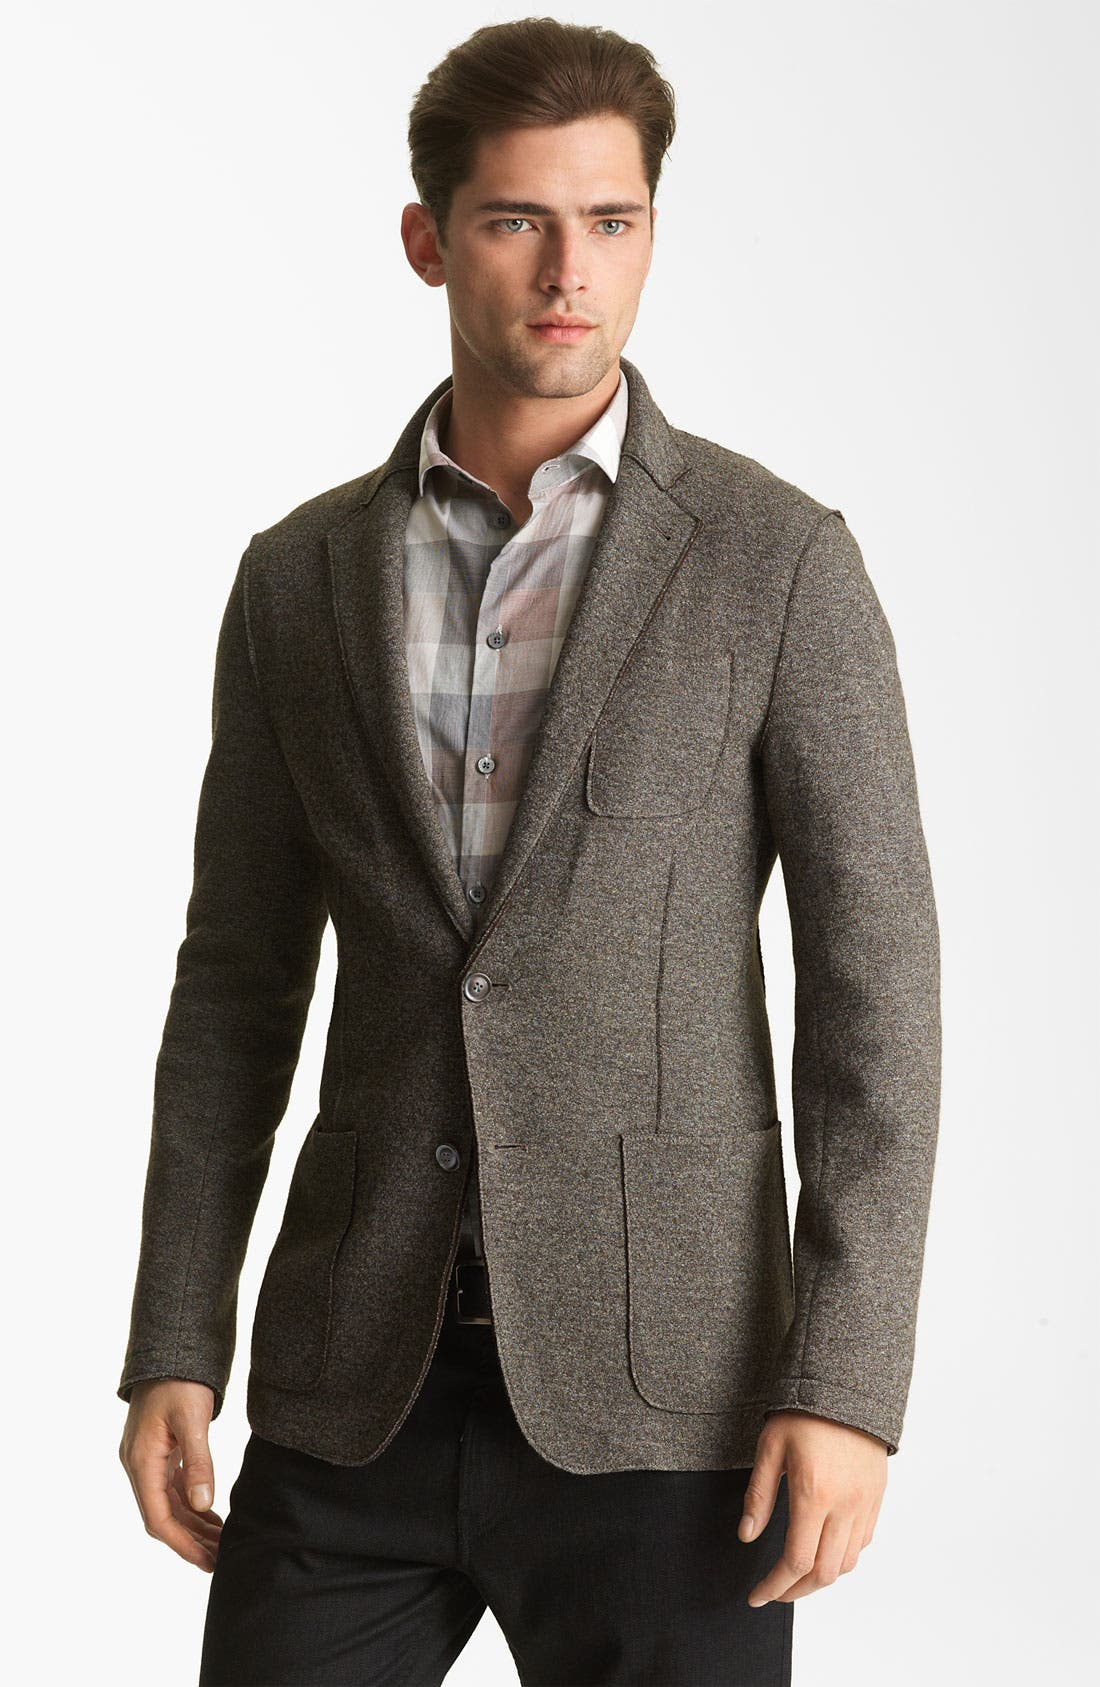 Alternate Image 1 Selected - Armani Collezioni Wool Blend Sportcoat